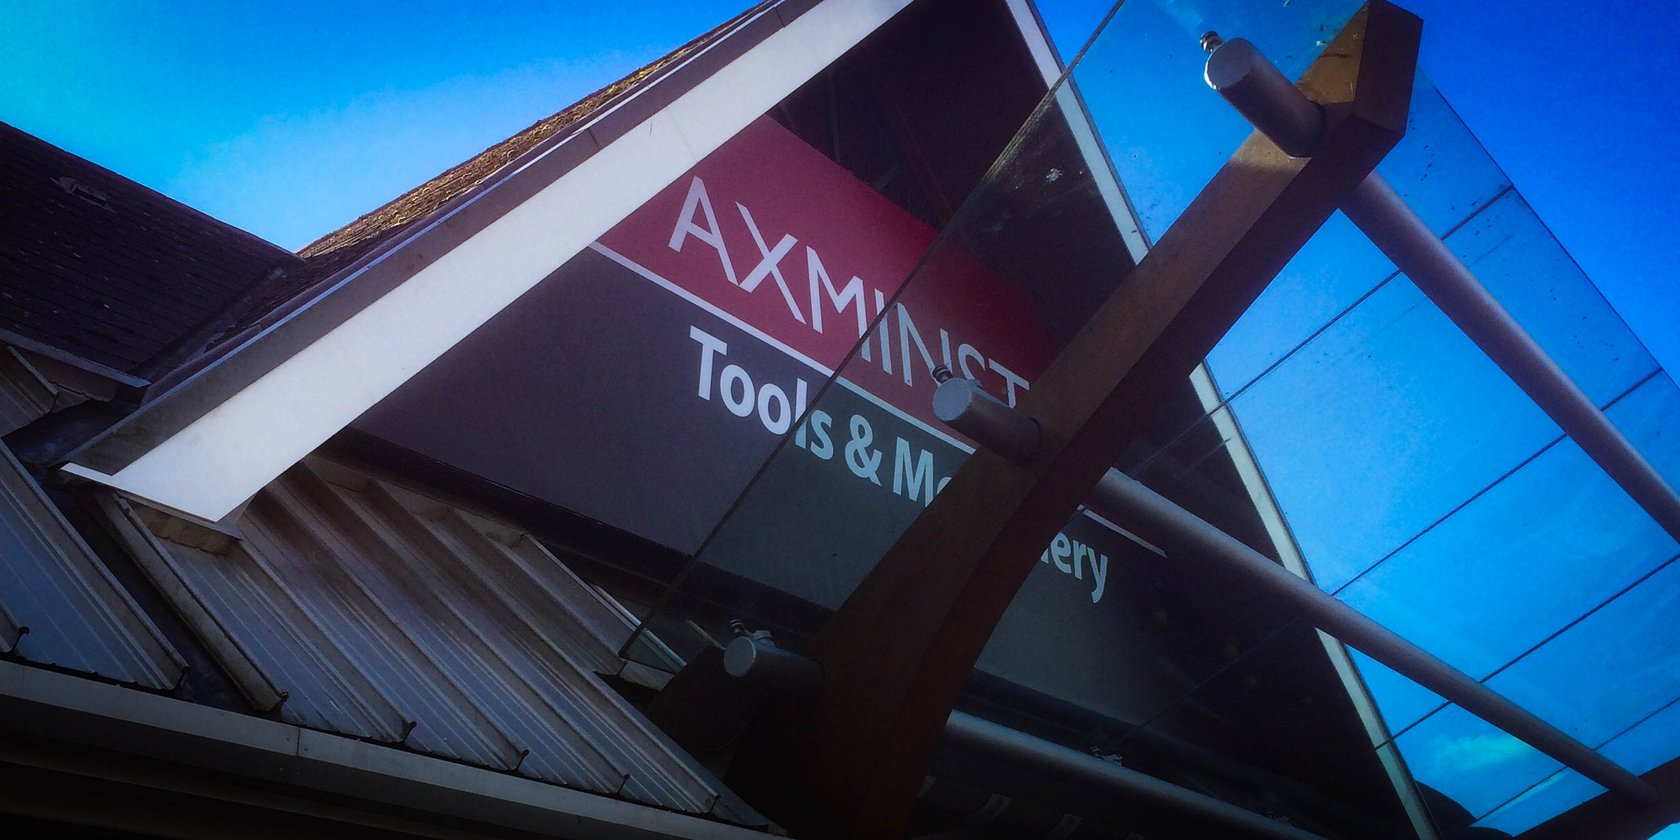 External Signs for Axminster Tools by Creative Solutions